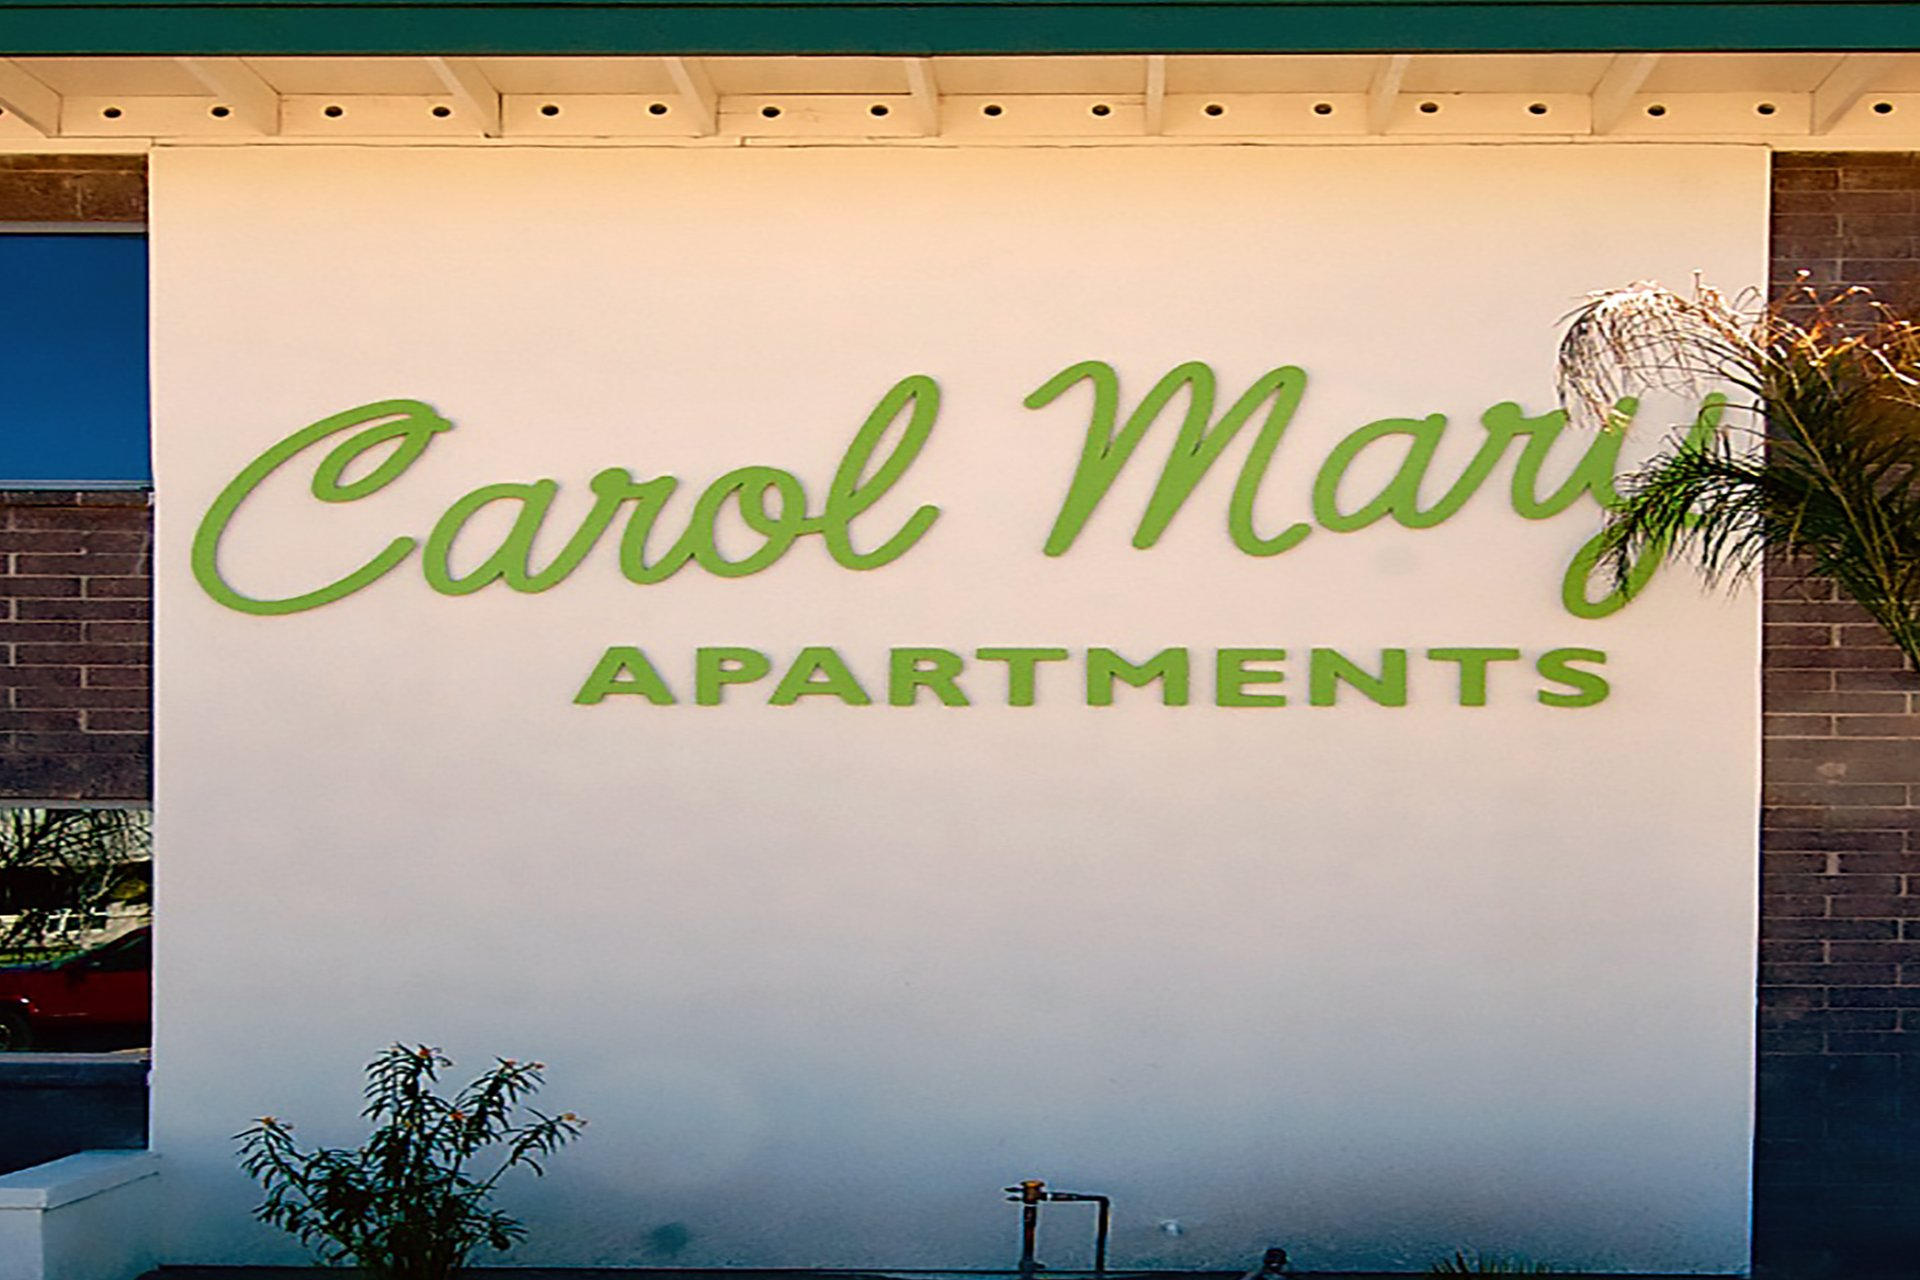 Carol Mary Apartments Phoenix, AZ signage